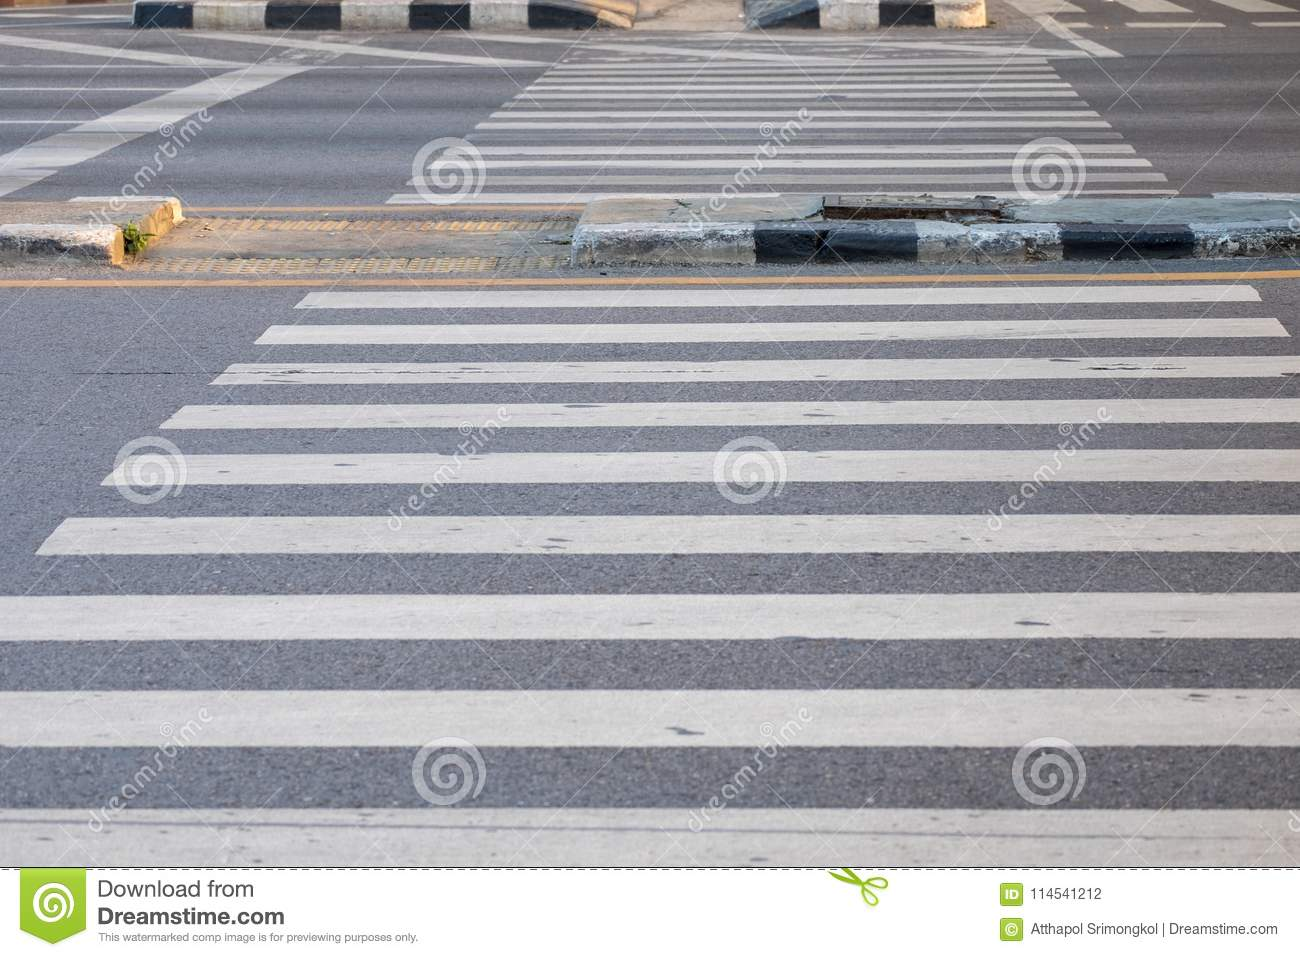 Crosswalk for walking across the street at the intersection